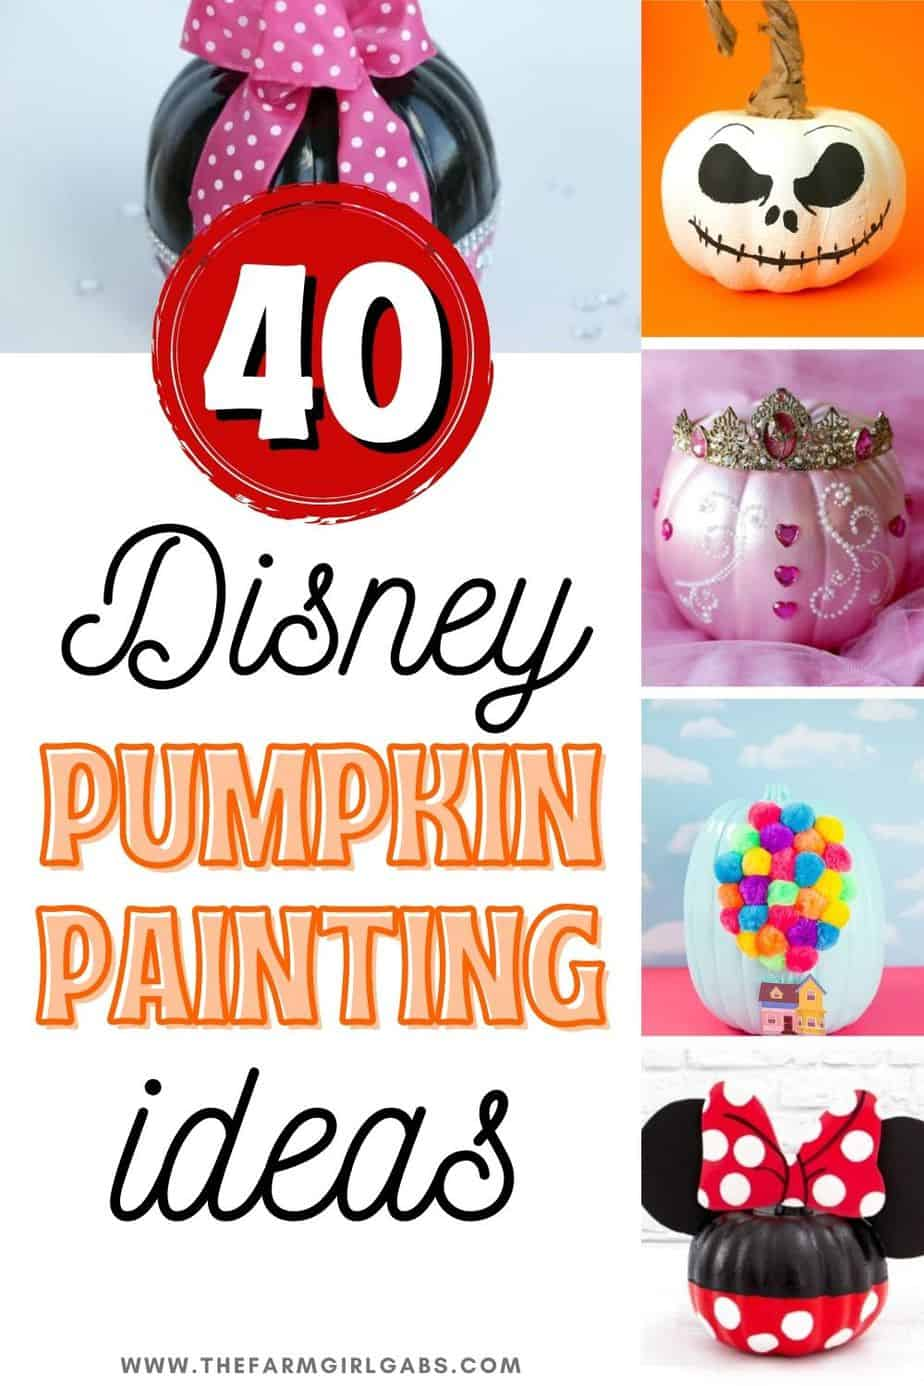 Bippity boppity boo! Halloween is just around the corner. These DIY Disney Pumpkin Painting Ideas are fun projects to add to your Halloween Decorations. These Disney-themed pumpkins are fun for young kids, old kids and kids of all ages. From Disney Princesses to Disney Villians to Star Wars, you will definitely find your favorite Character in this Disney Painted Pumpkins collection. These no-carve pumpkin ideas are fun for the entire family. Which one of these Disney pumpkins will you make ?